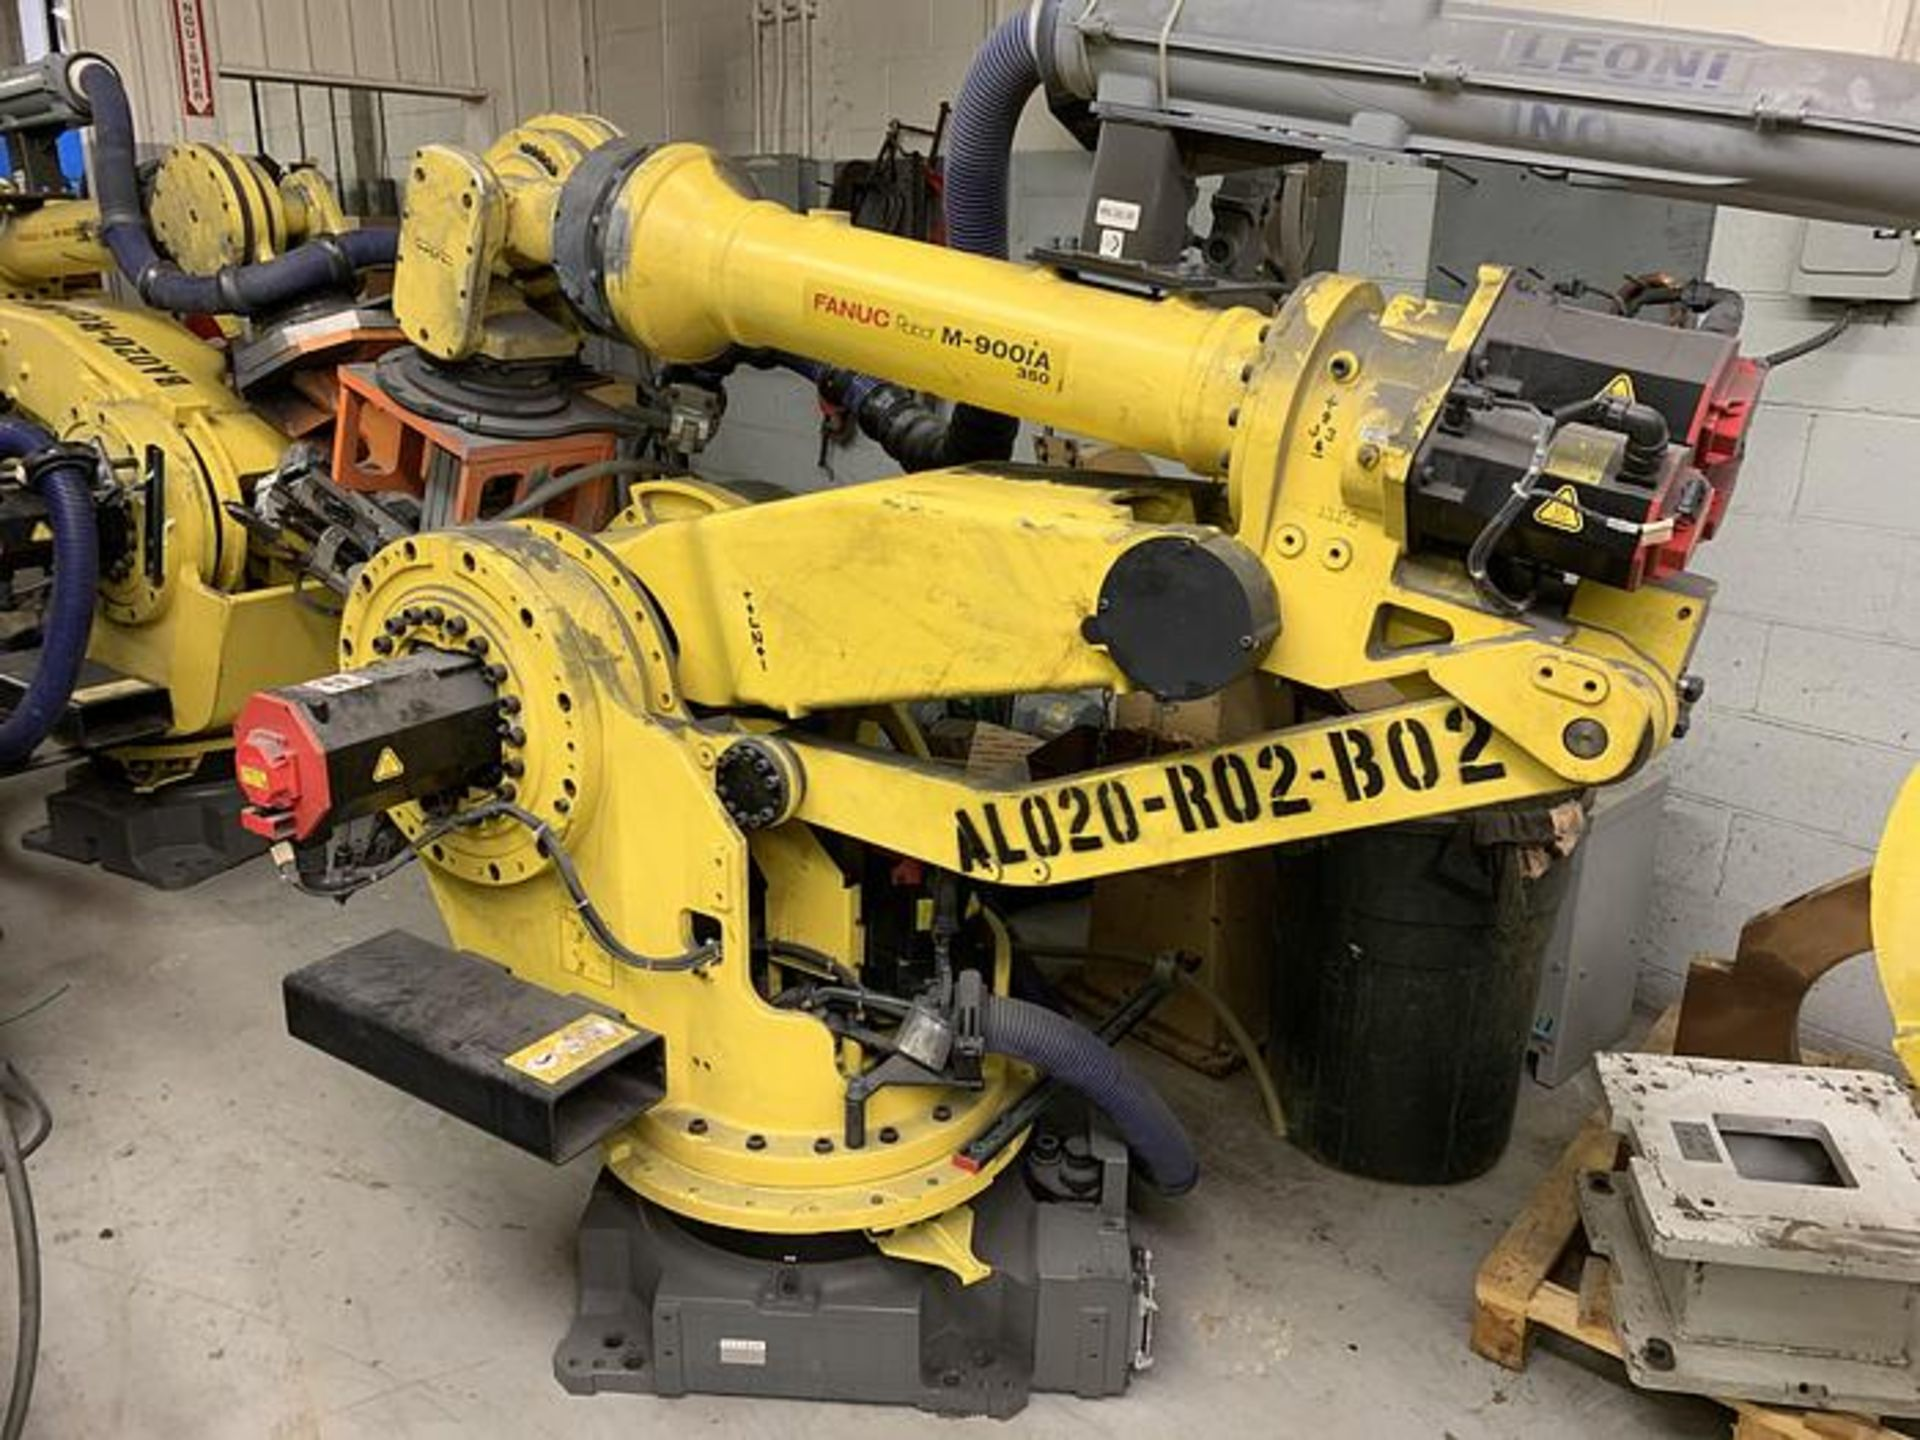 FANUC M900iA/350 6 AXIS ROBOT WITH R30iA CONTROLLER MACHINE, CABLES & TEACH SN F111634, YEAR 2011